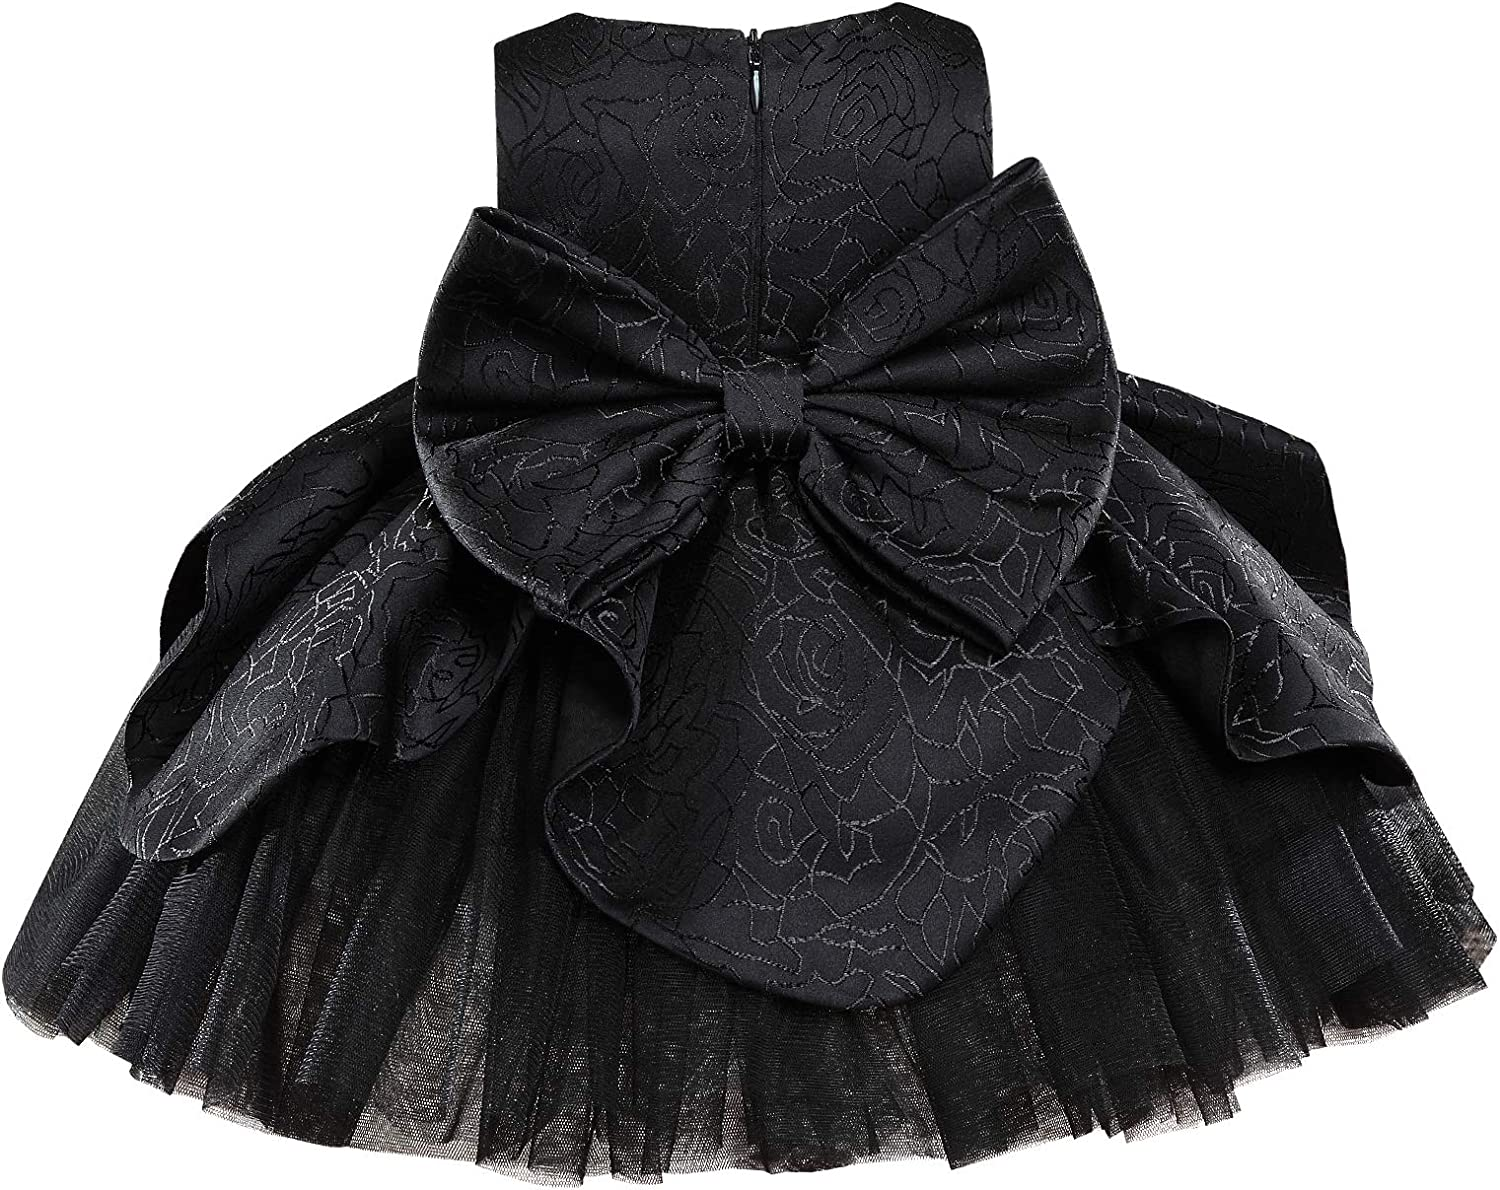 TENTIDE Baby Girls Tulle Wedding Birthday Princess Dress Trust Free Shipping New Pageant